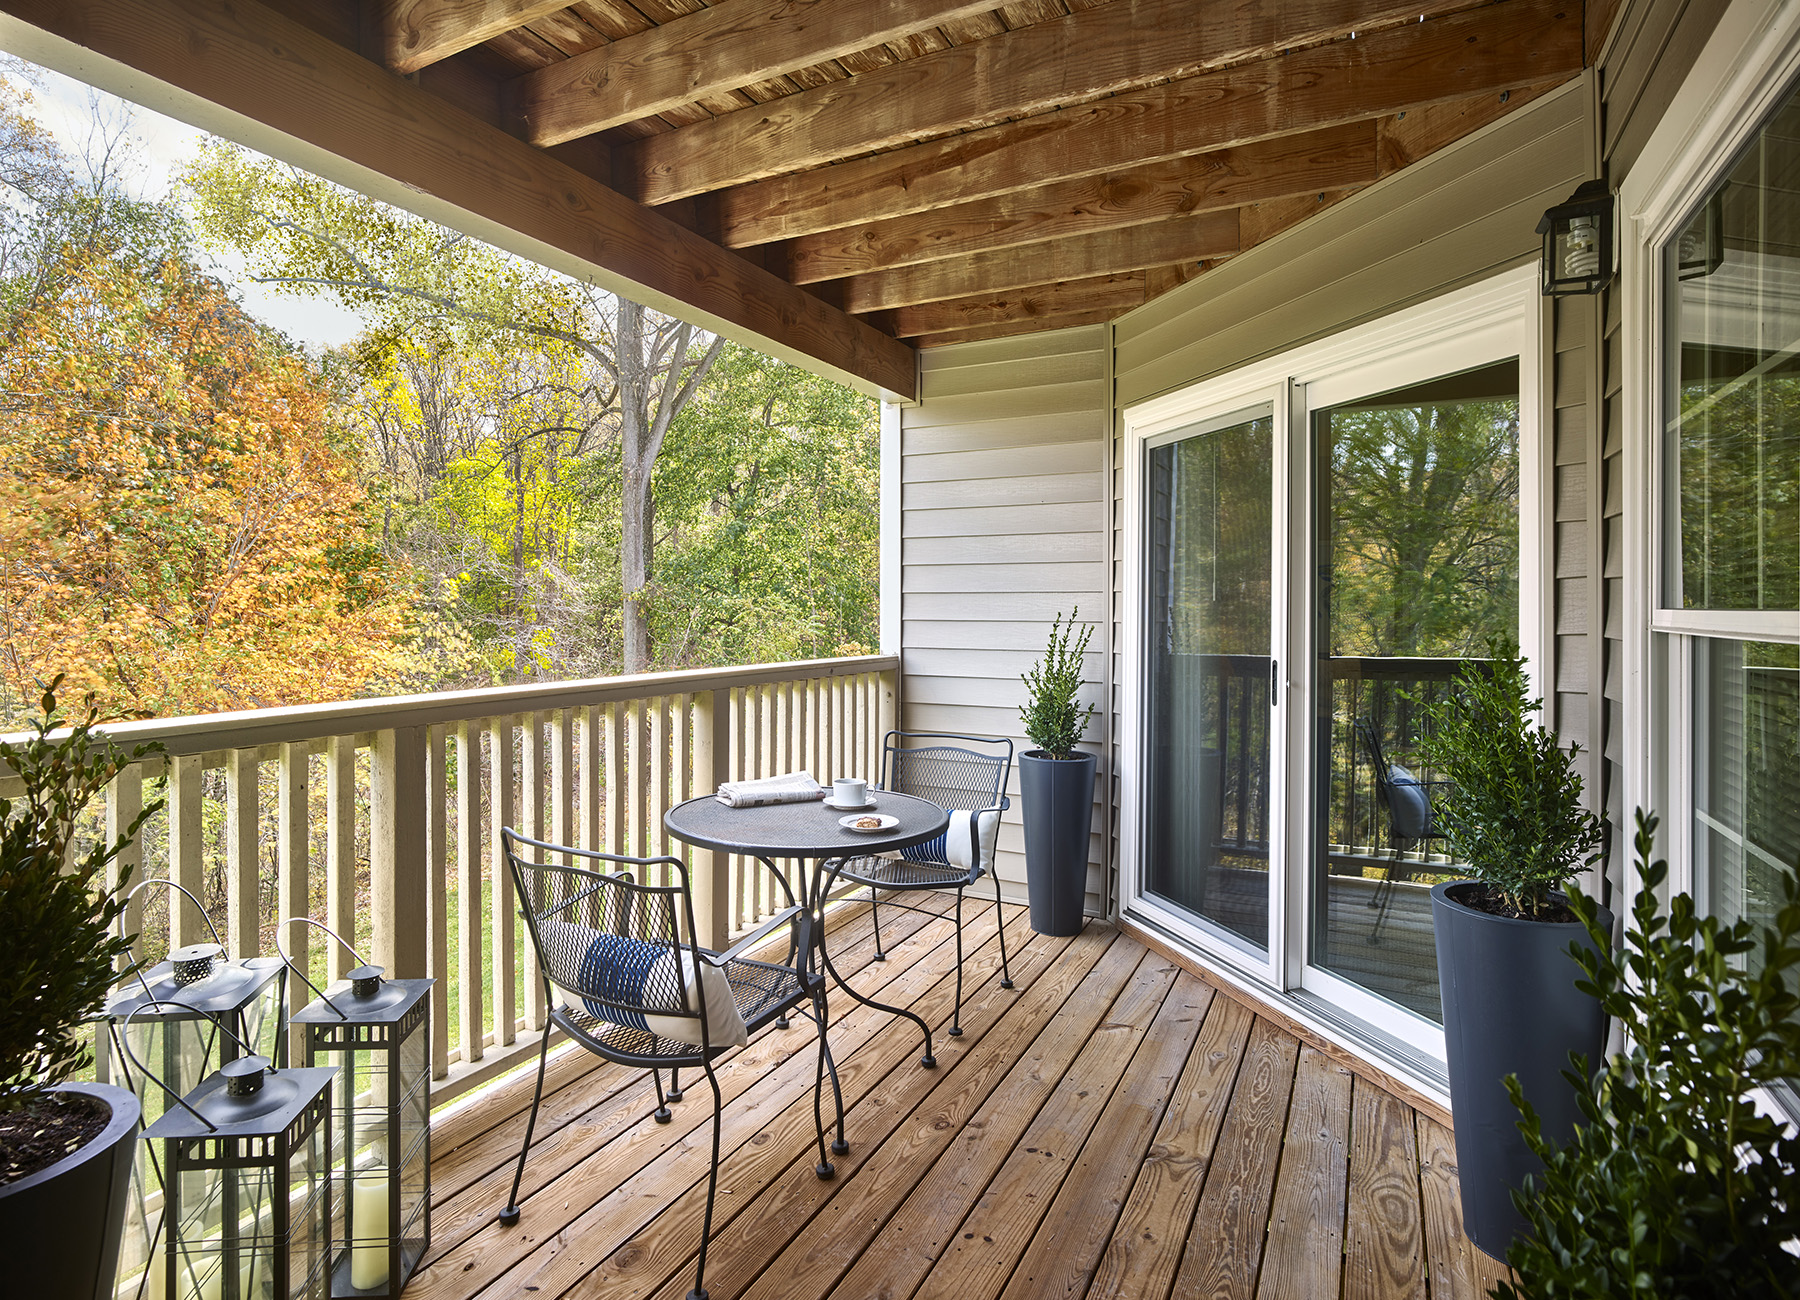 Wooden balcony with table looking out to changing leaves in forest